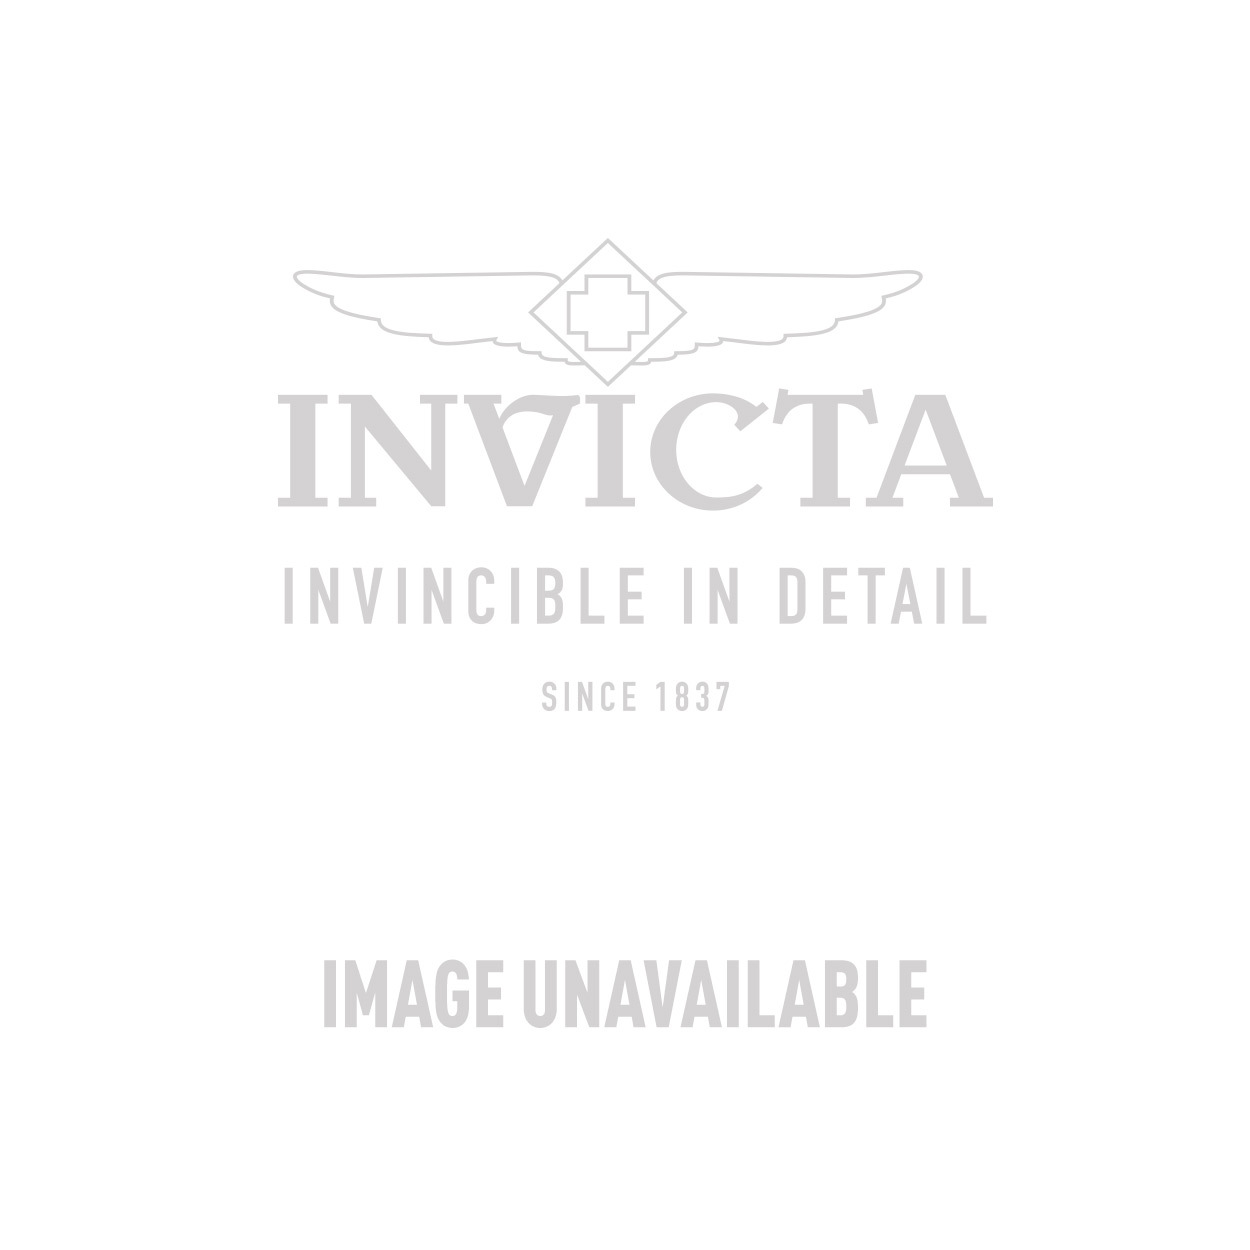 Invicta Angel Swiss Movement Quartz Watch - Gold case with White tone Leather band - Model 14742